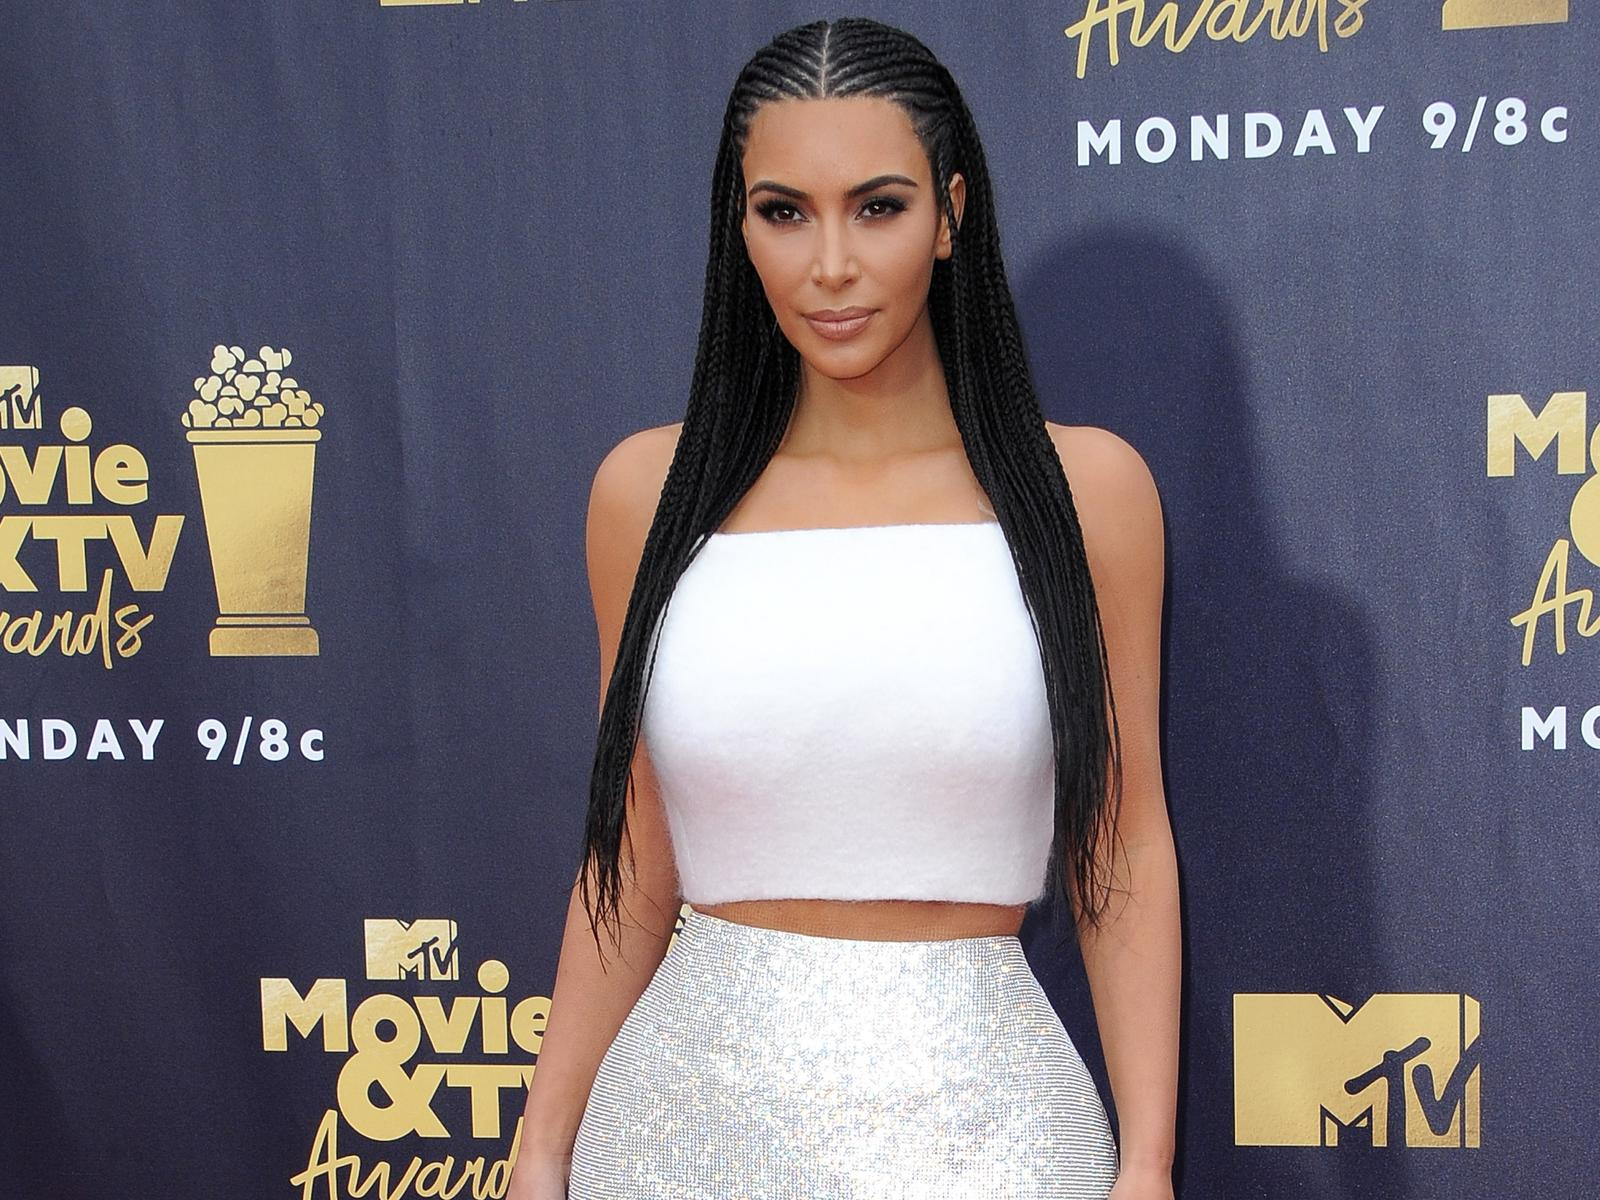 Kim Kardashian West Braids White Dress MTV Movie Awards Carpet